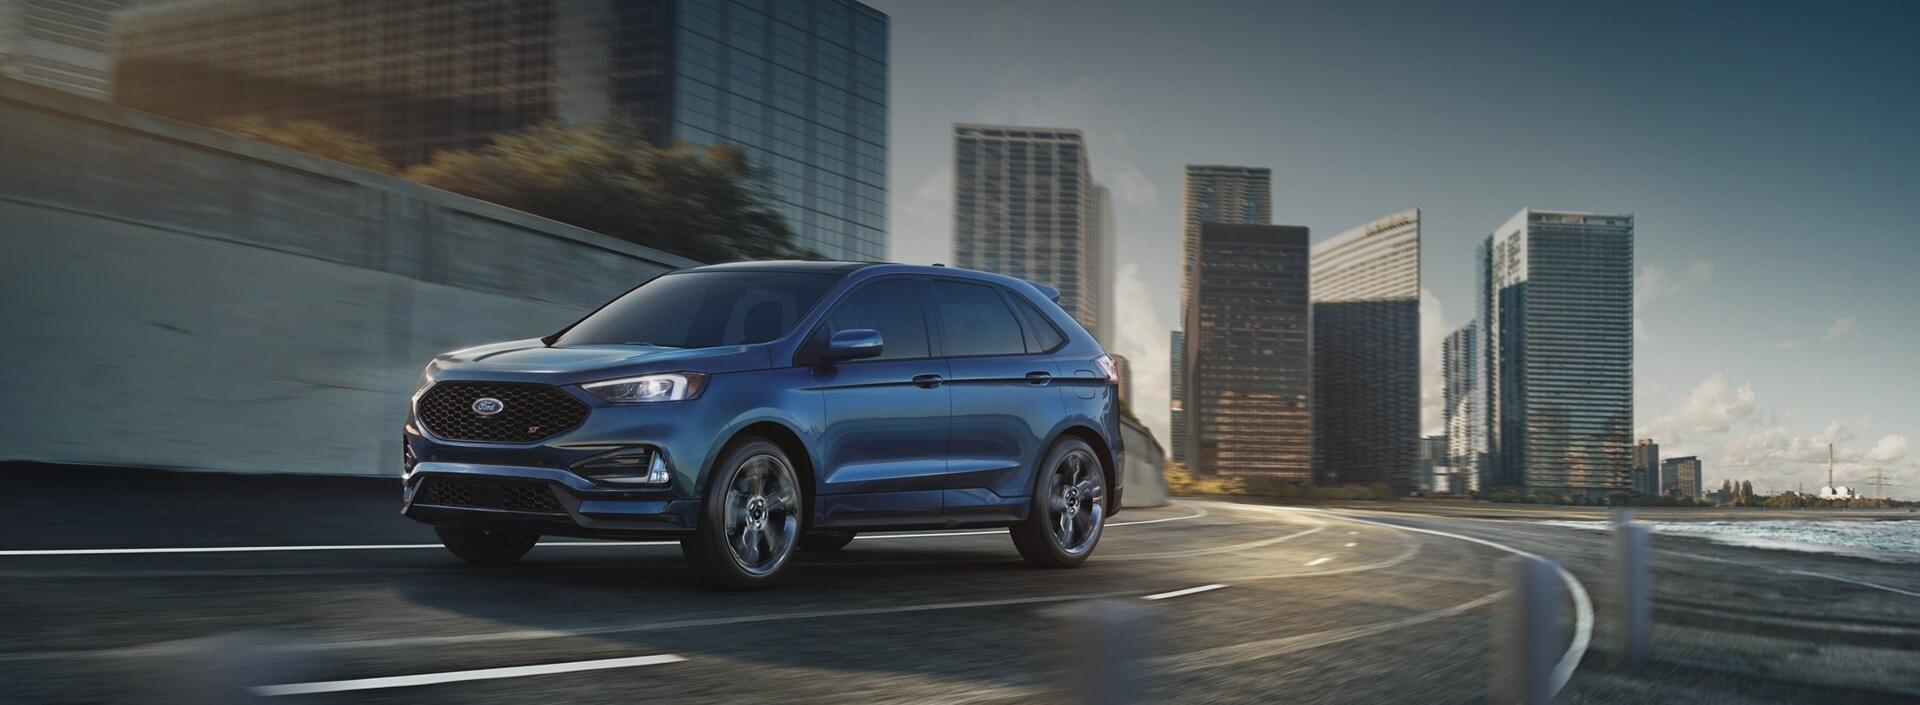 2021 Ford Edge | Spanish SoCal Ford Dealers